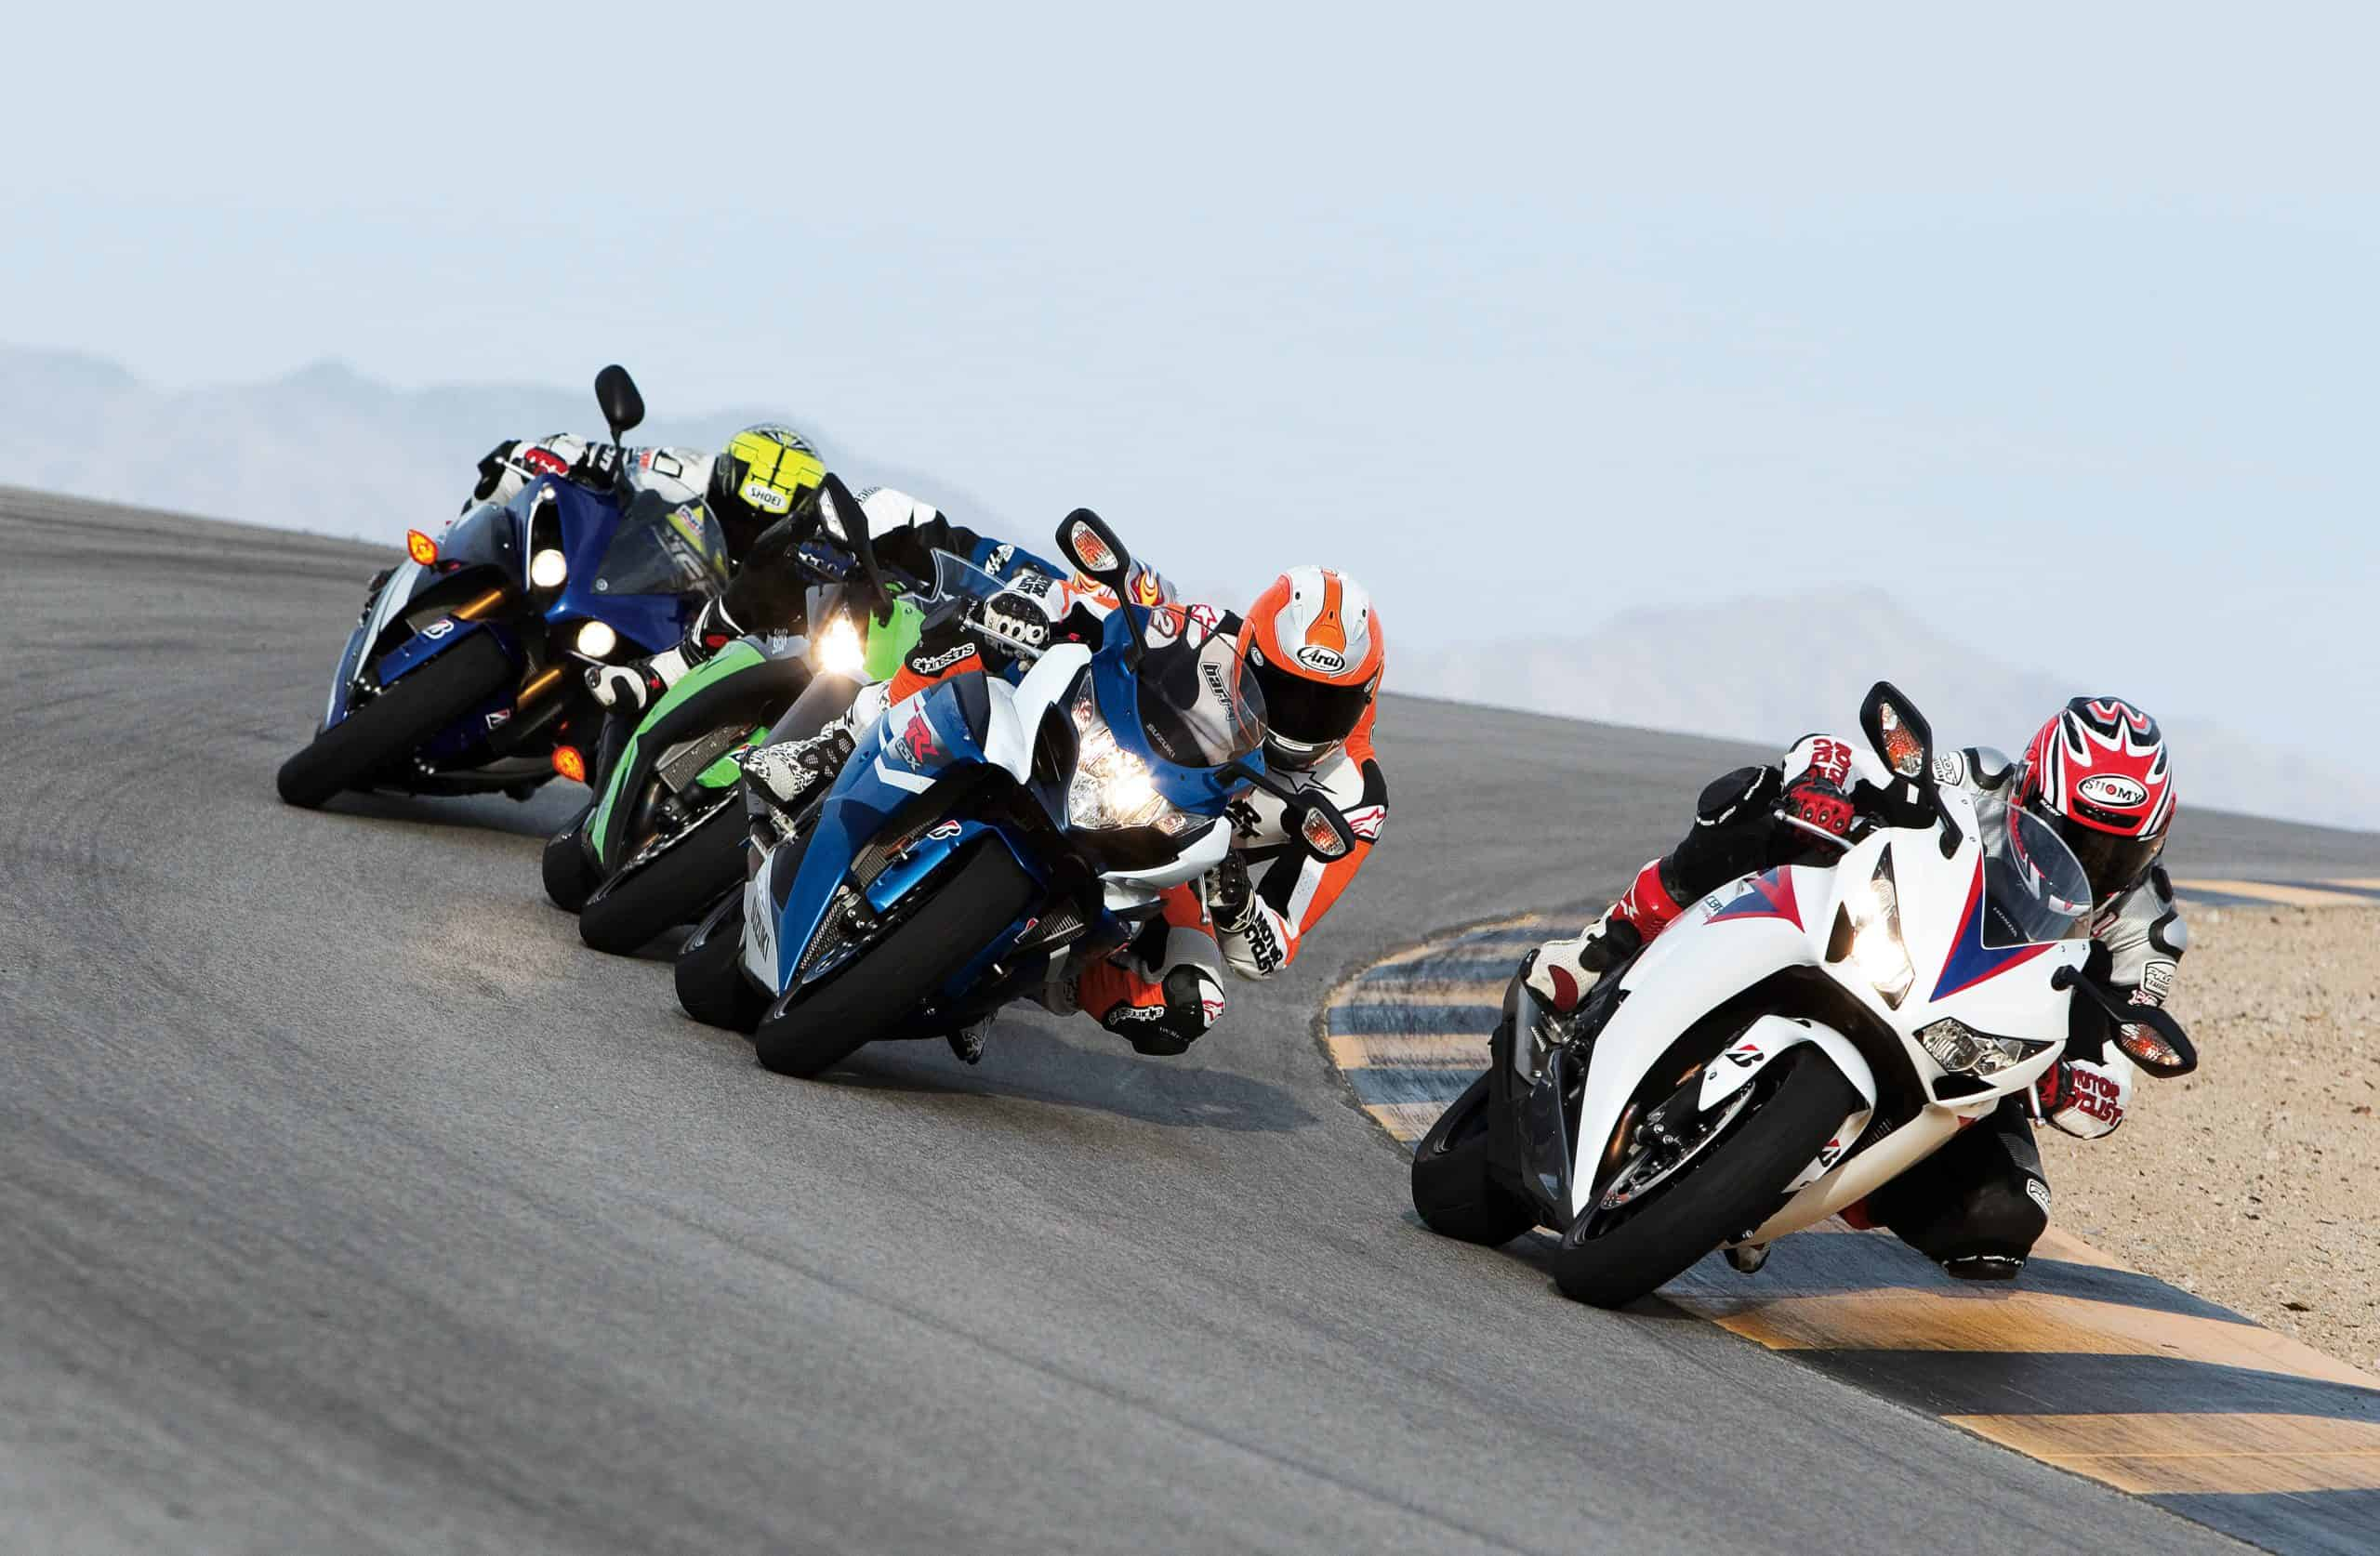 Different Types Of Racing - What You Need To Know